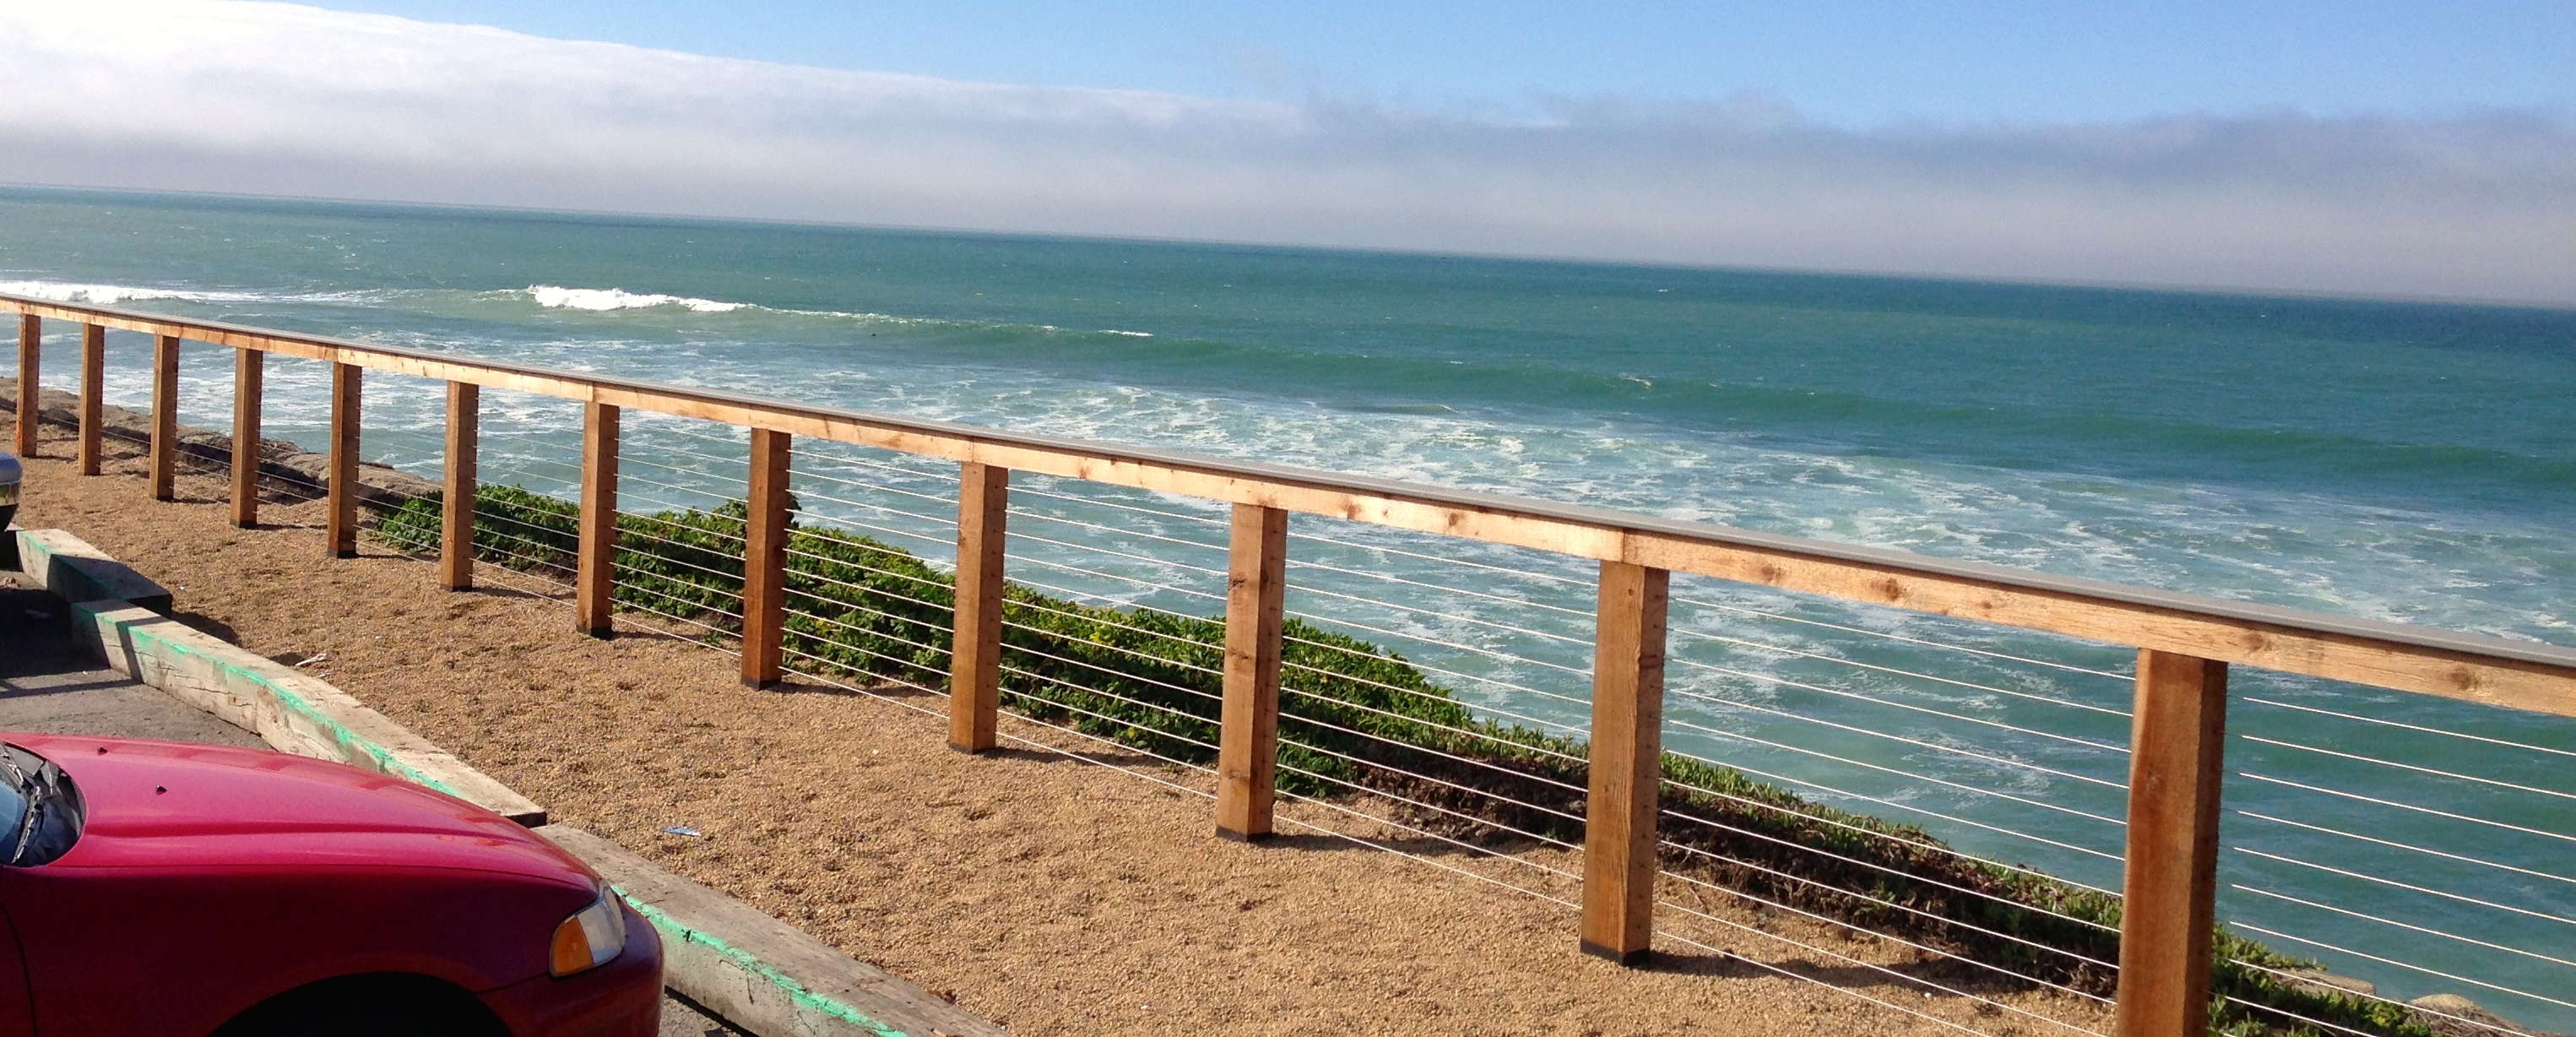 Josh Heckman Construction Installs Stainless Steel Cable Railings